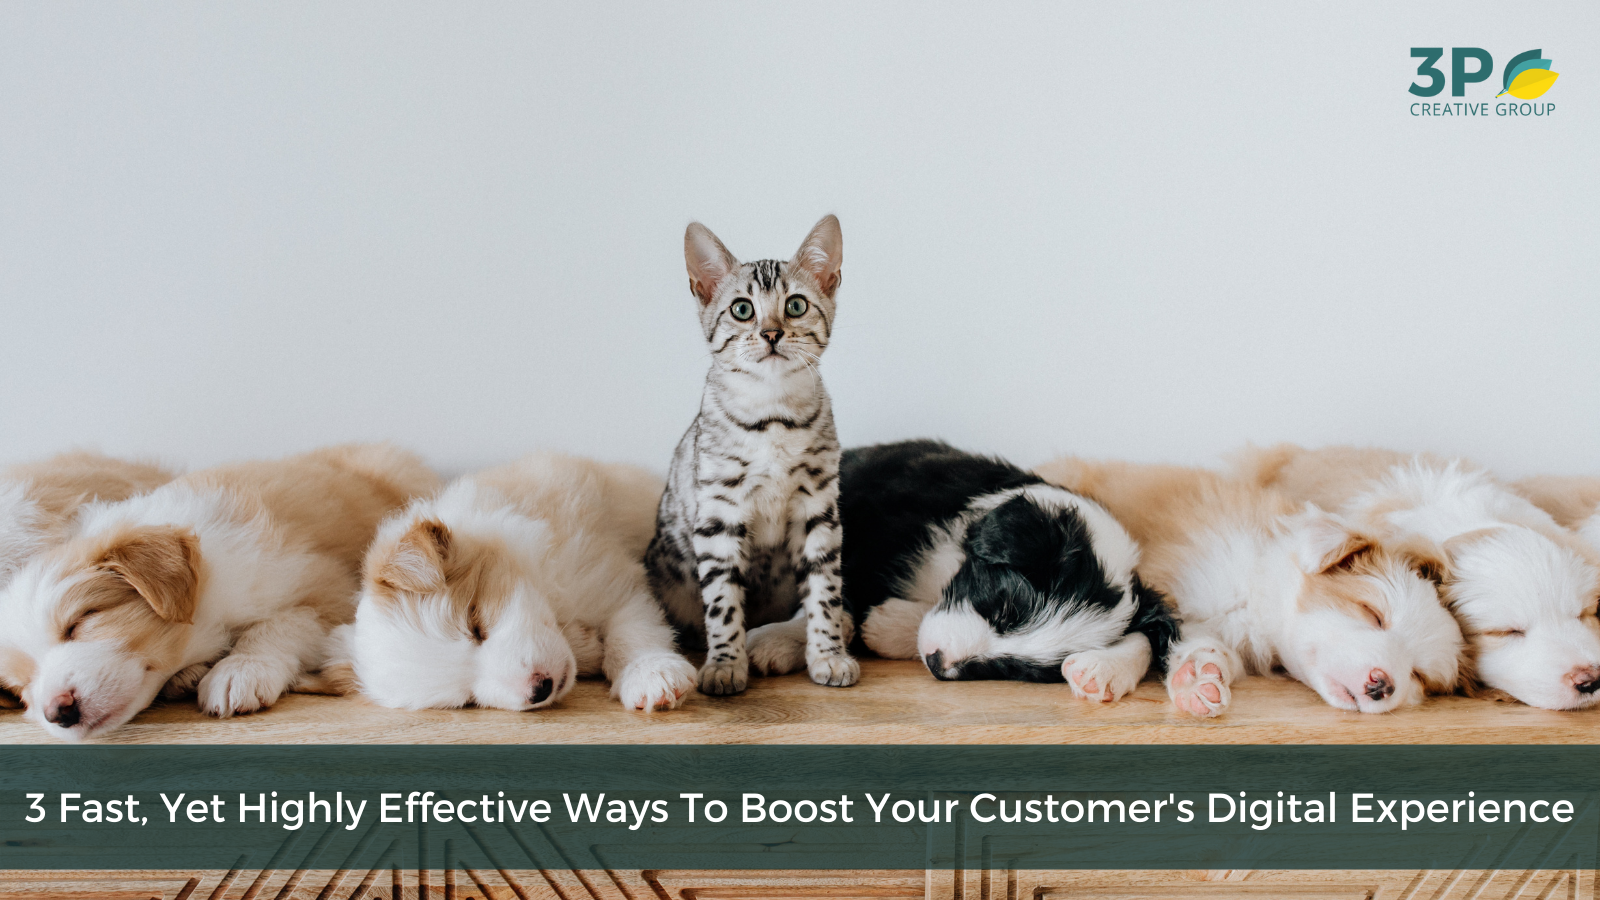 3 Fast, Yet Highly Effective Ways To Boost Your Customers Digital Experience